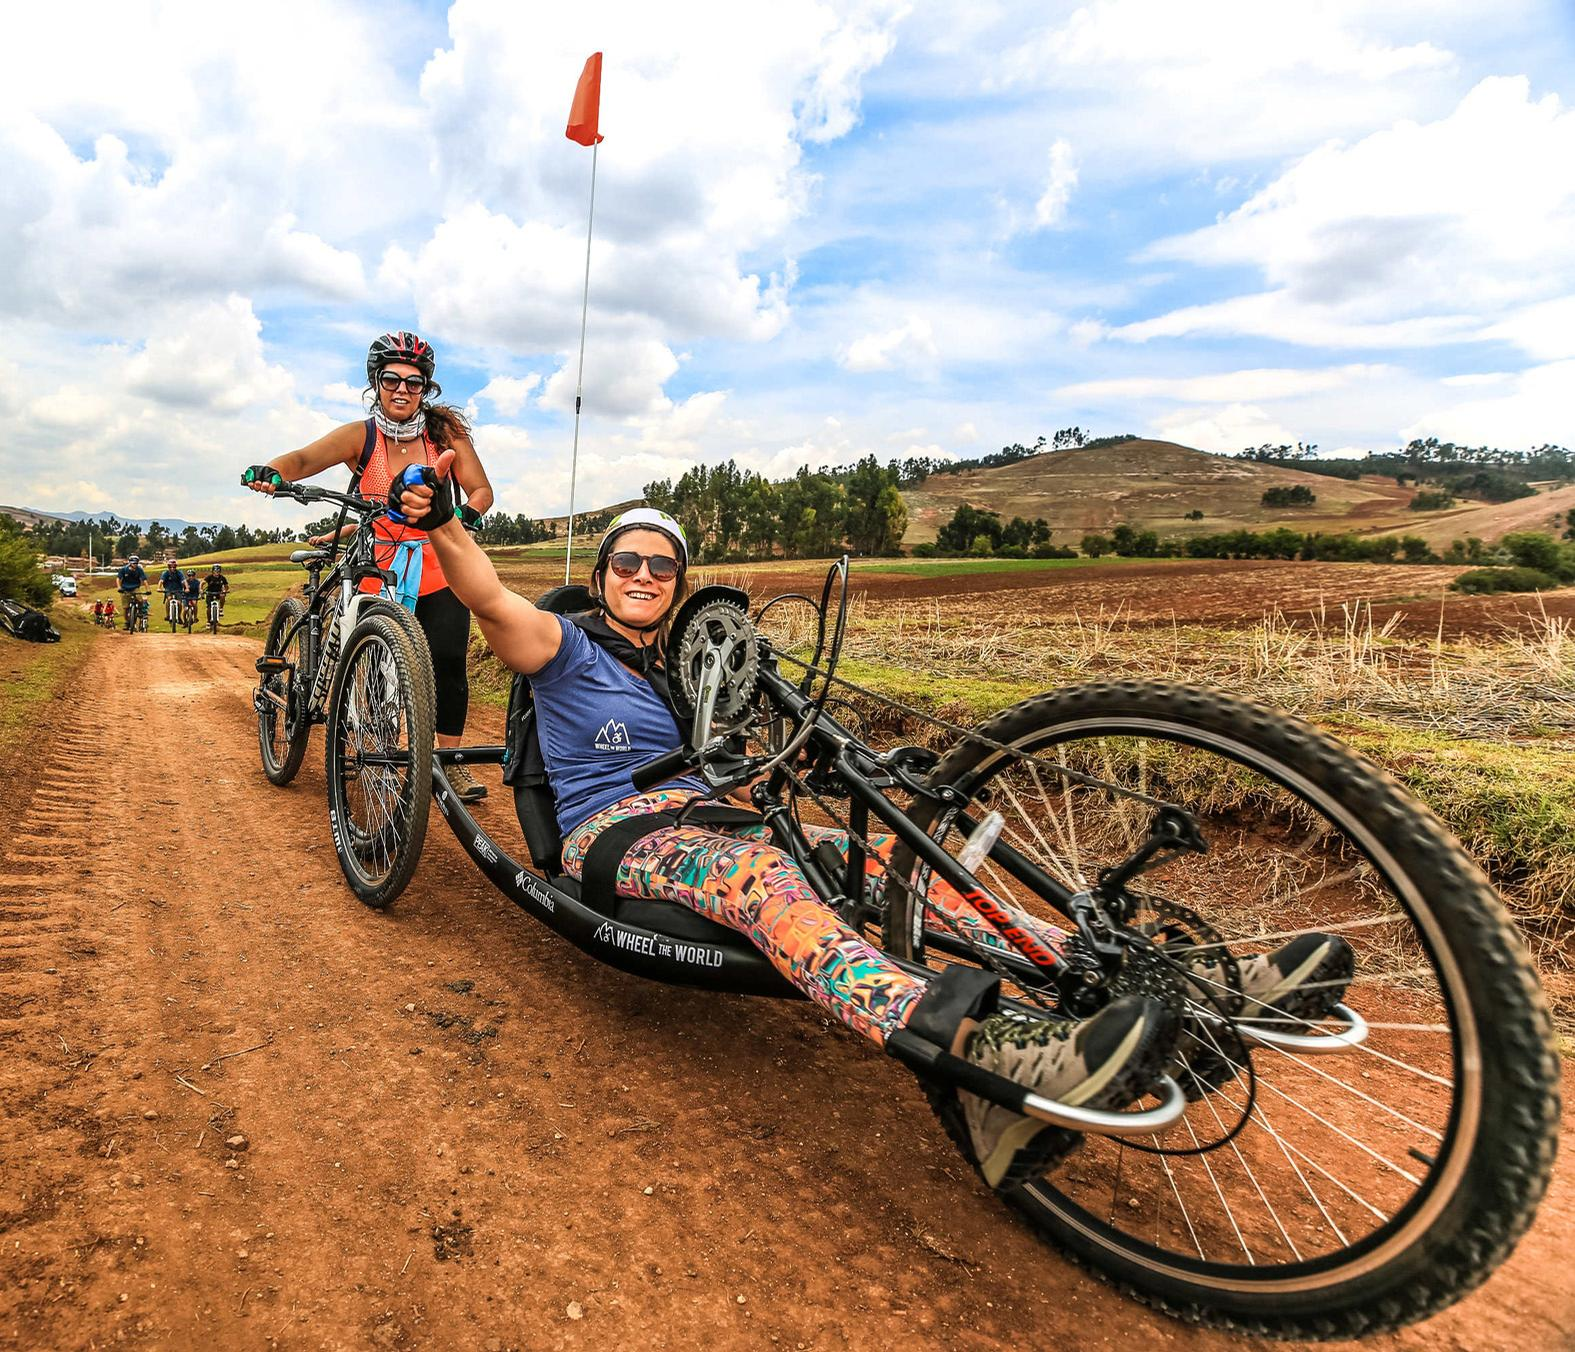 The range of equipment available includes wheelchairs, handcycles and trikes